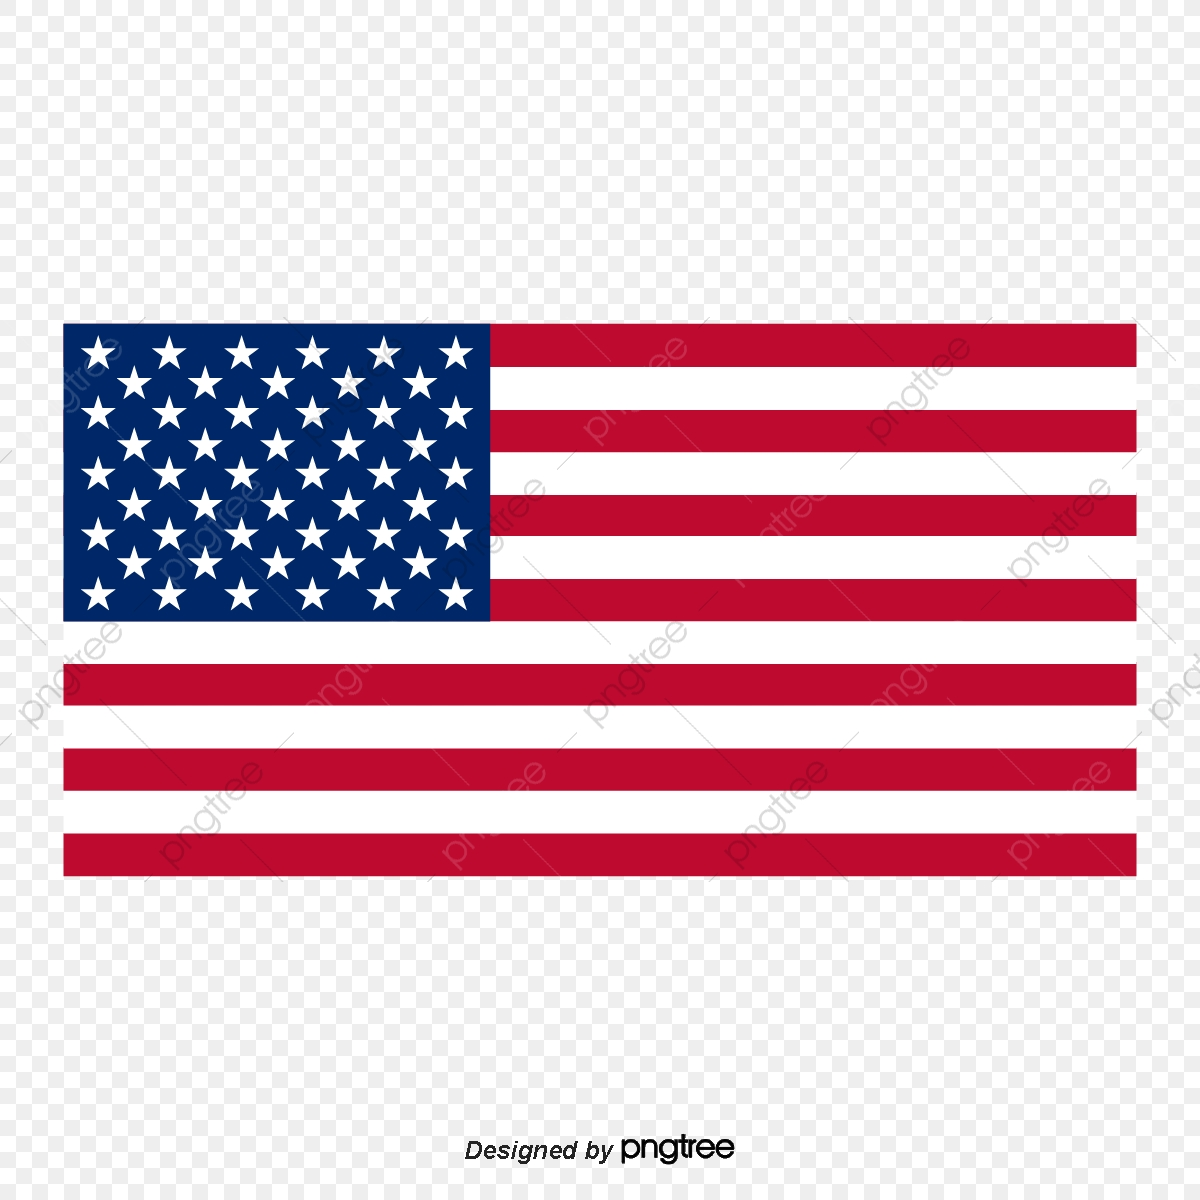 clipart black and white stock Cartoons american flag country. Usa transparent cartoon